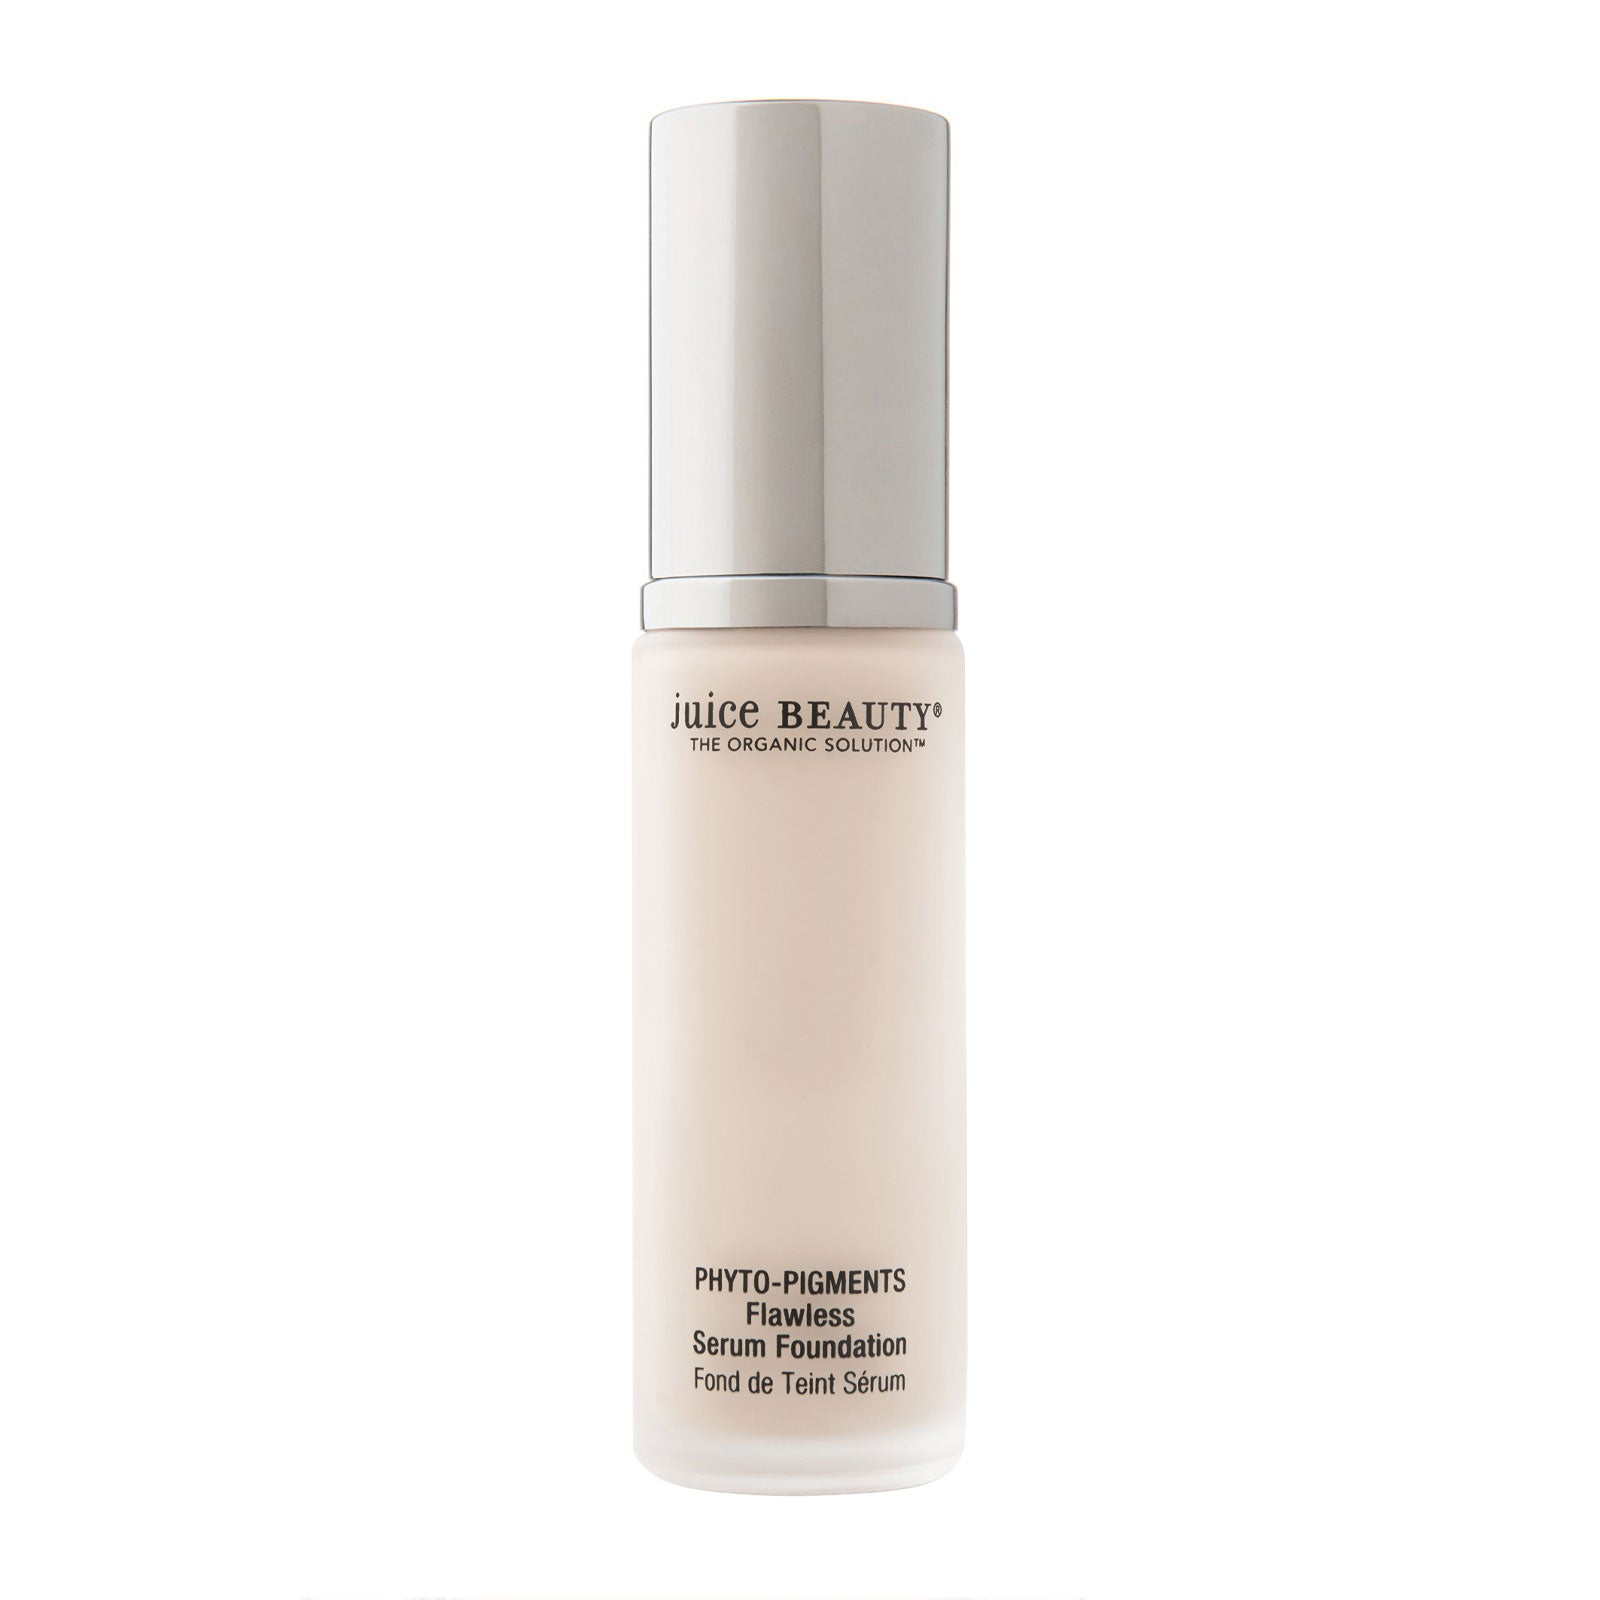 Juice Beauty PHYTO-PIGMENTS Flawless Serum Foundation 30ml